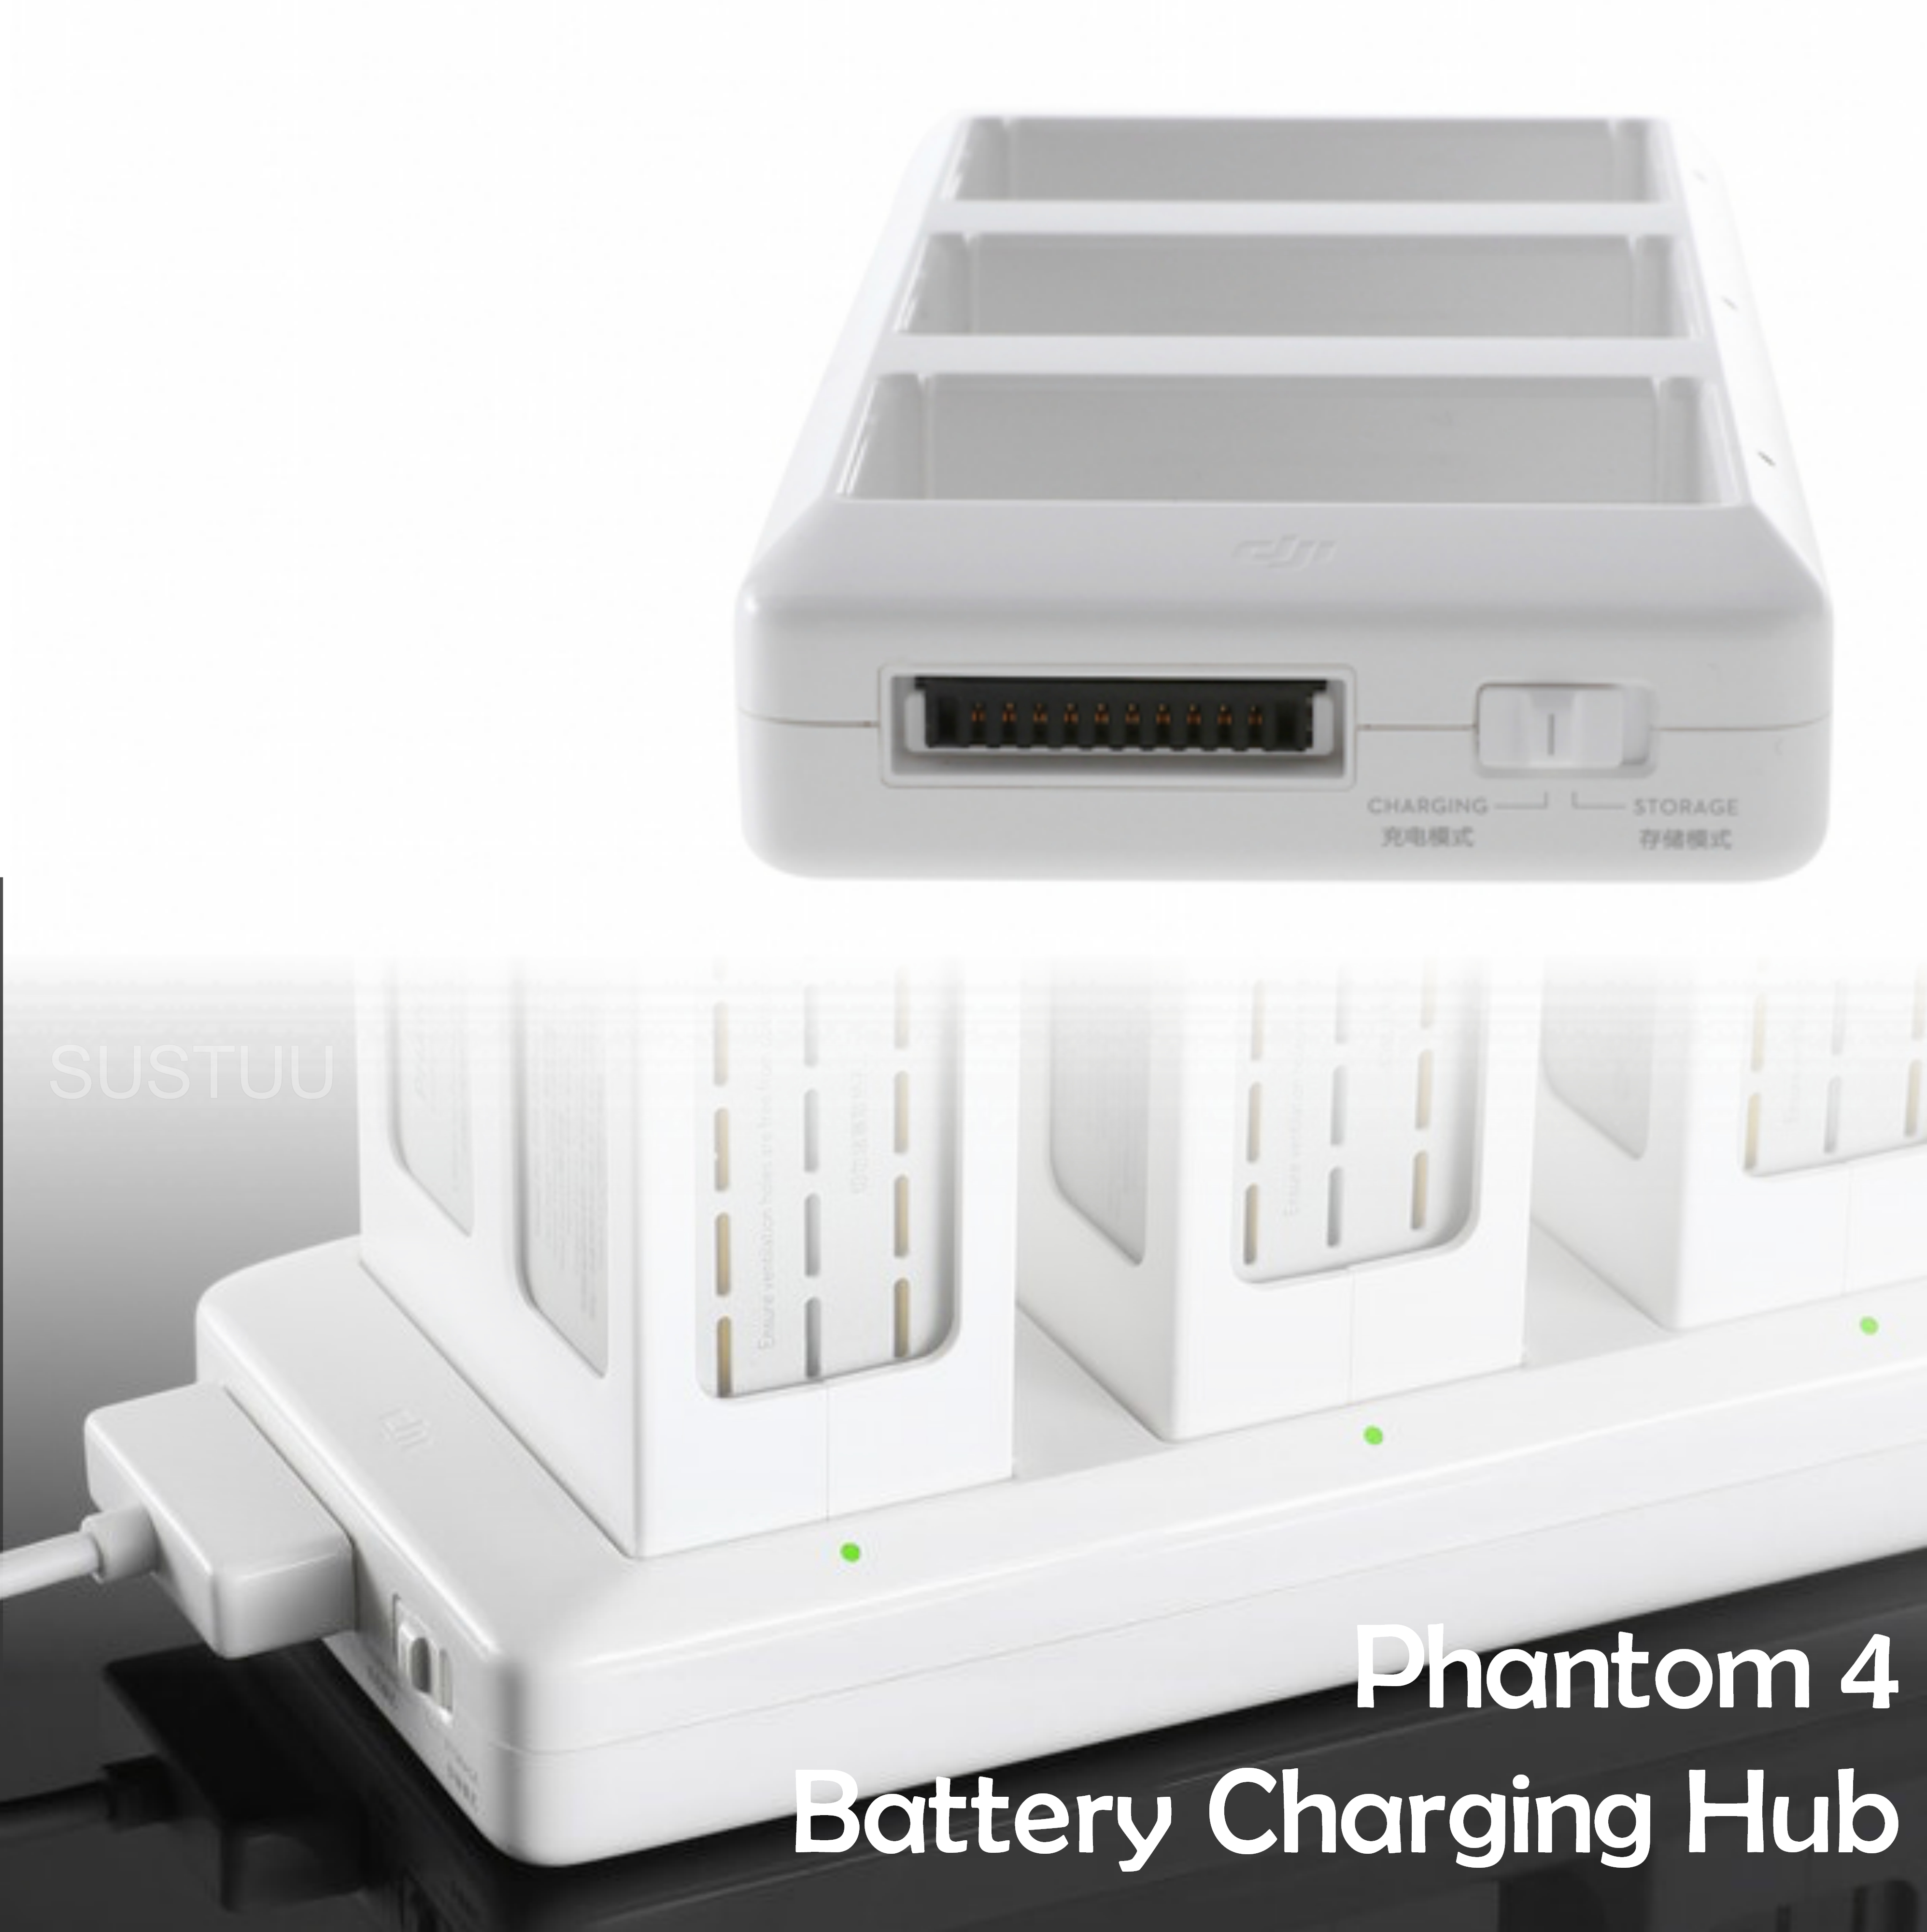 DJI Phantom 4 Battery Charging Hub|17.5V|3 in 1 Sequence Charge|CP.PT.000343